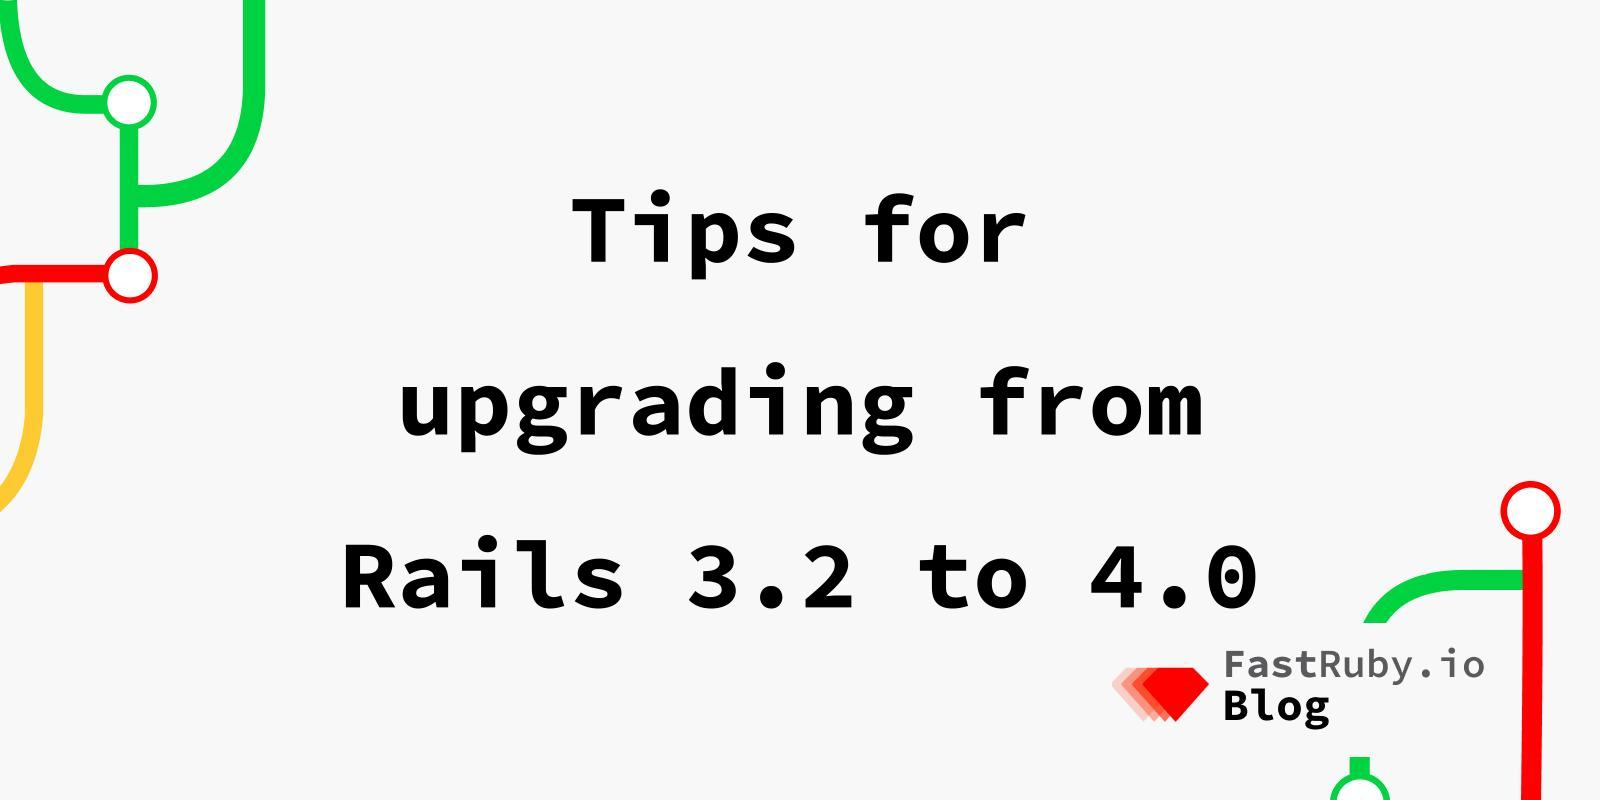 Tips for upgrading from Rails 3.2 to 4.0